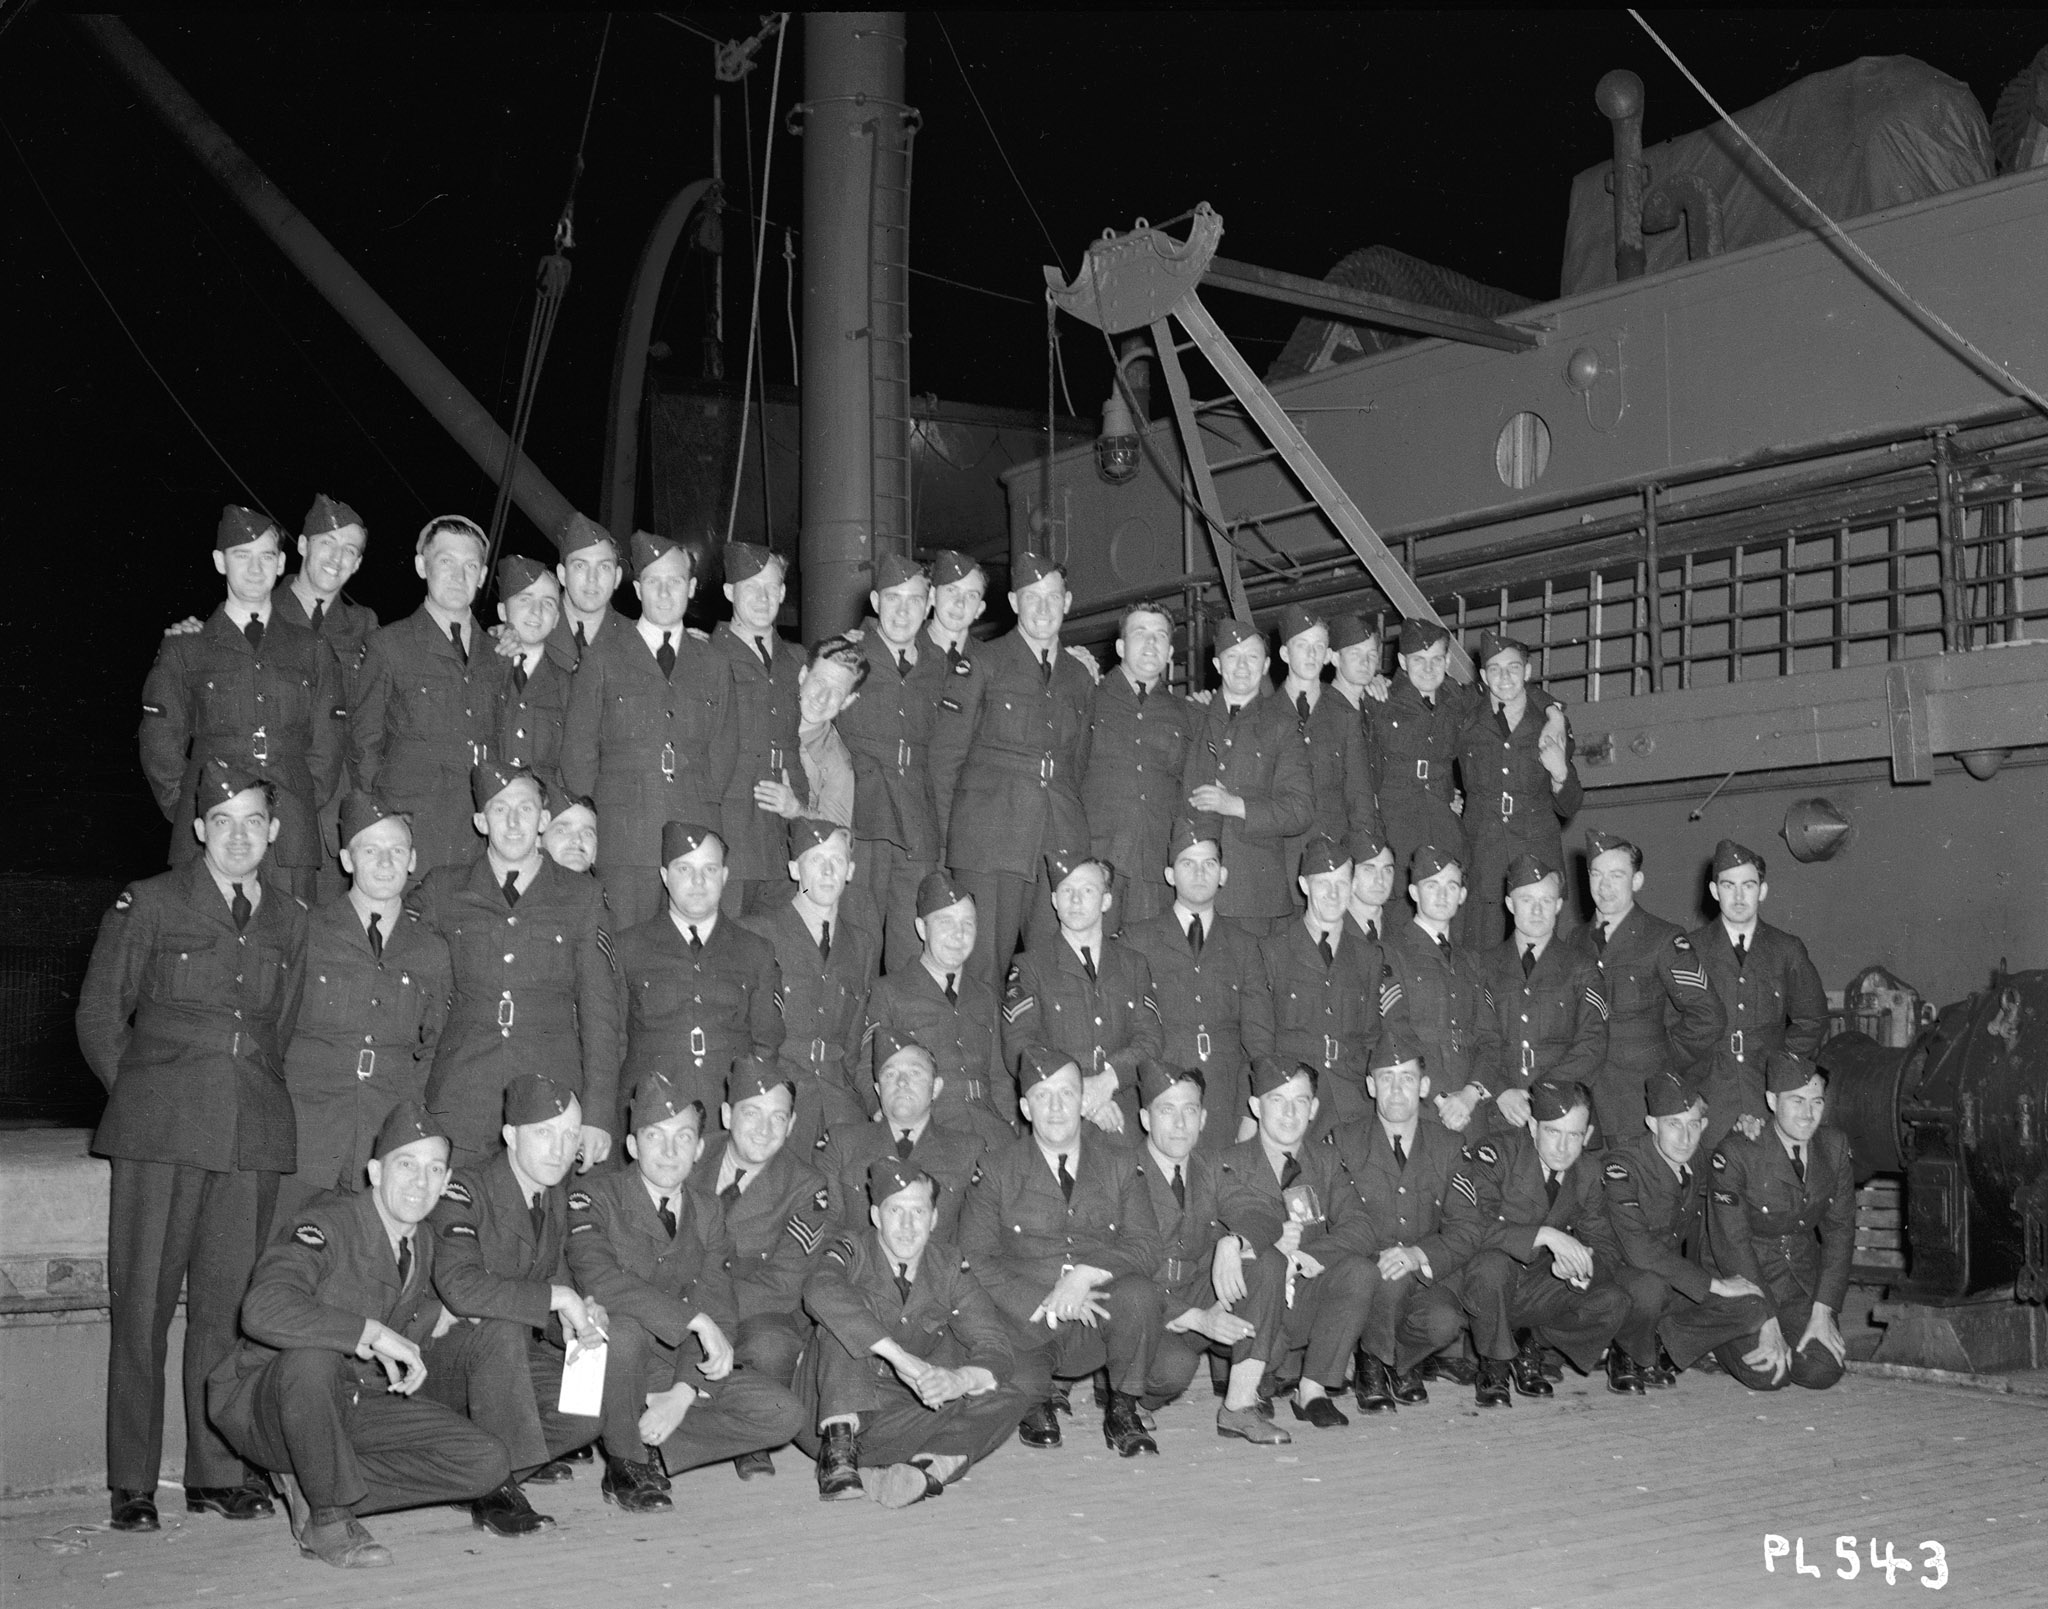 Le 8 juin 1940, les membres du 1er Escadron embarquent à bord d'un navire à Halifax, à destination de l'Europe. PHOTO : Archives du MDN, PL-543